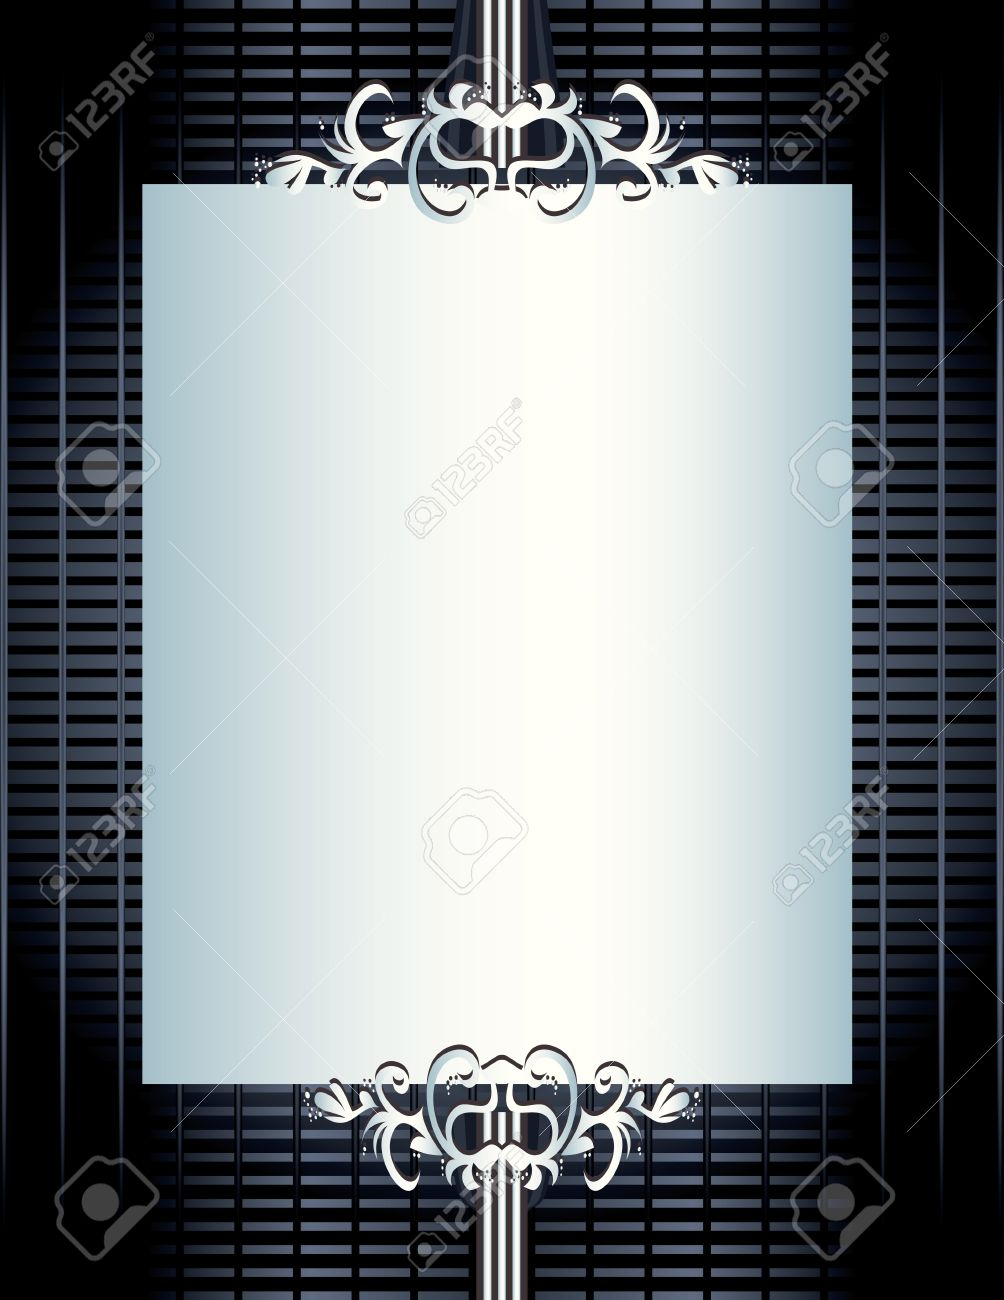 A blue background with and elegant blank frame design Stock Vector - 7315145